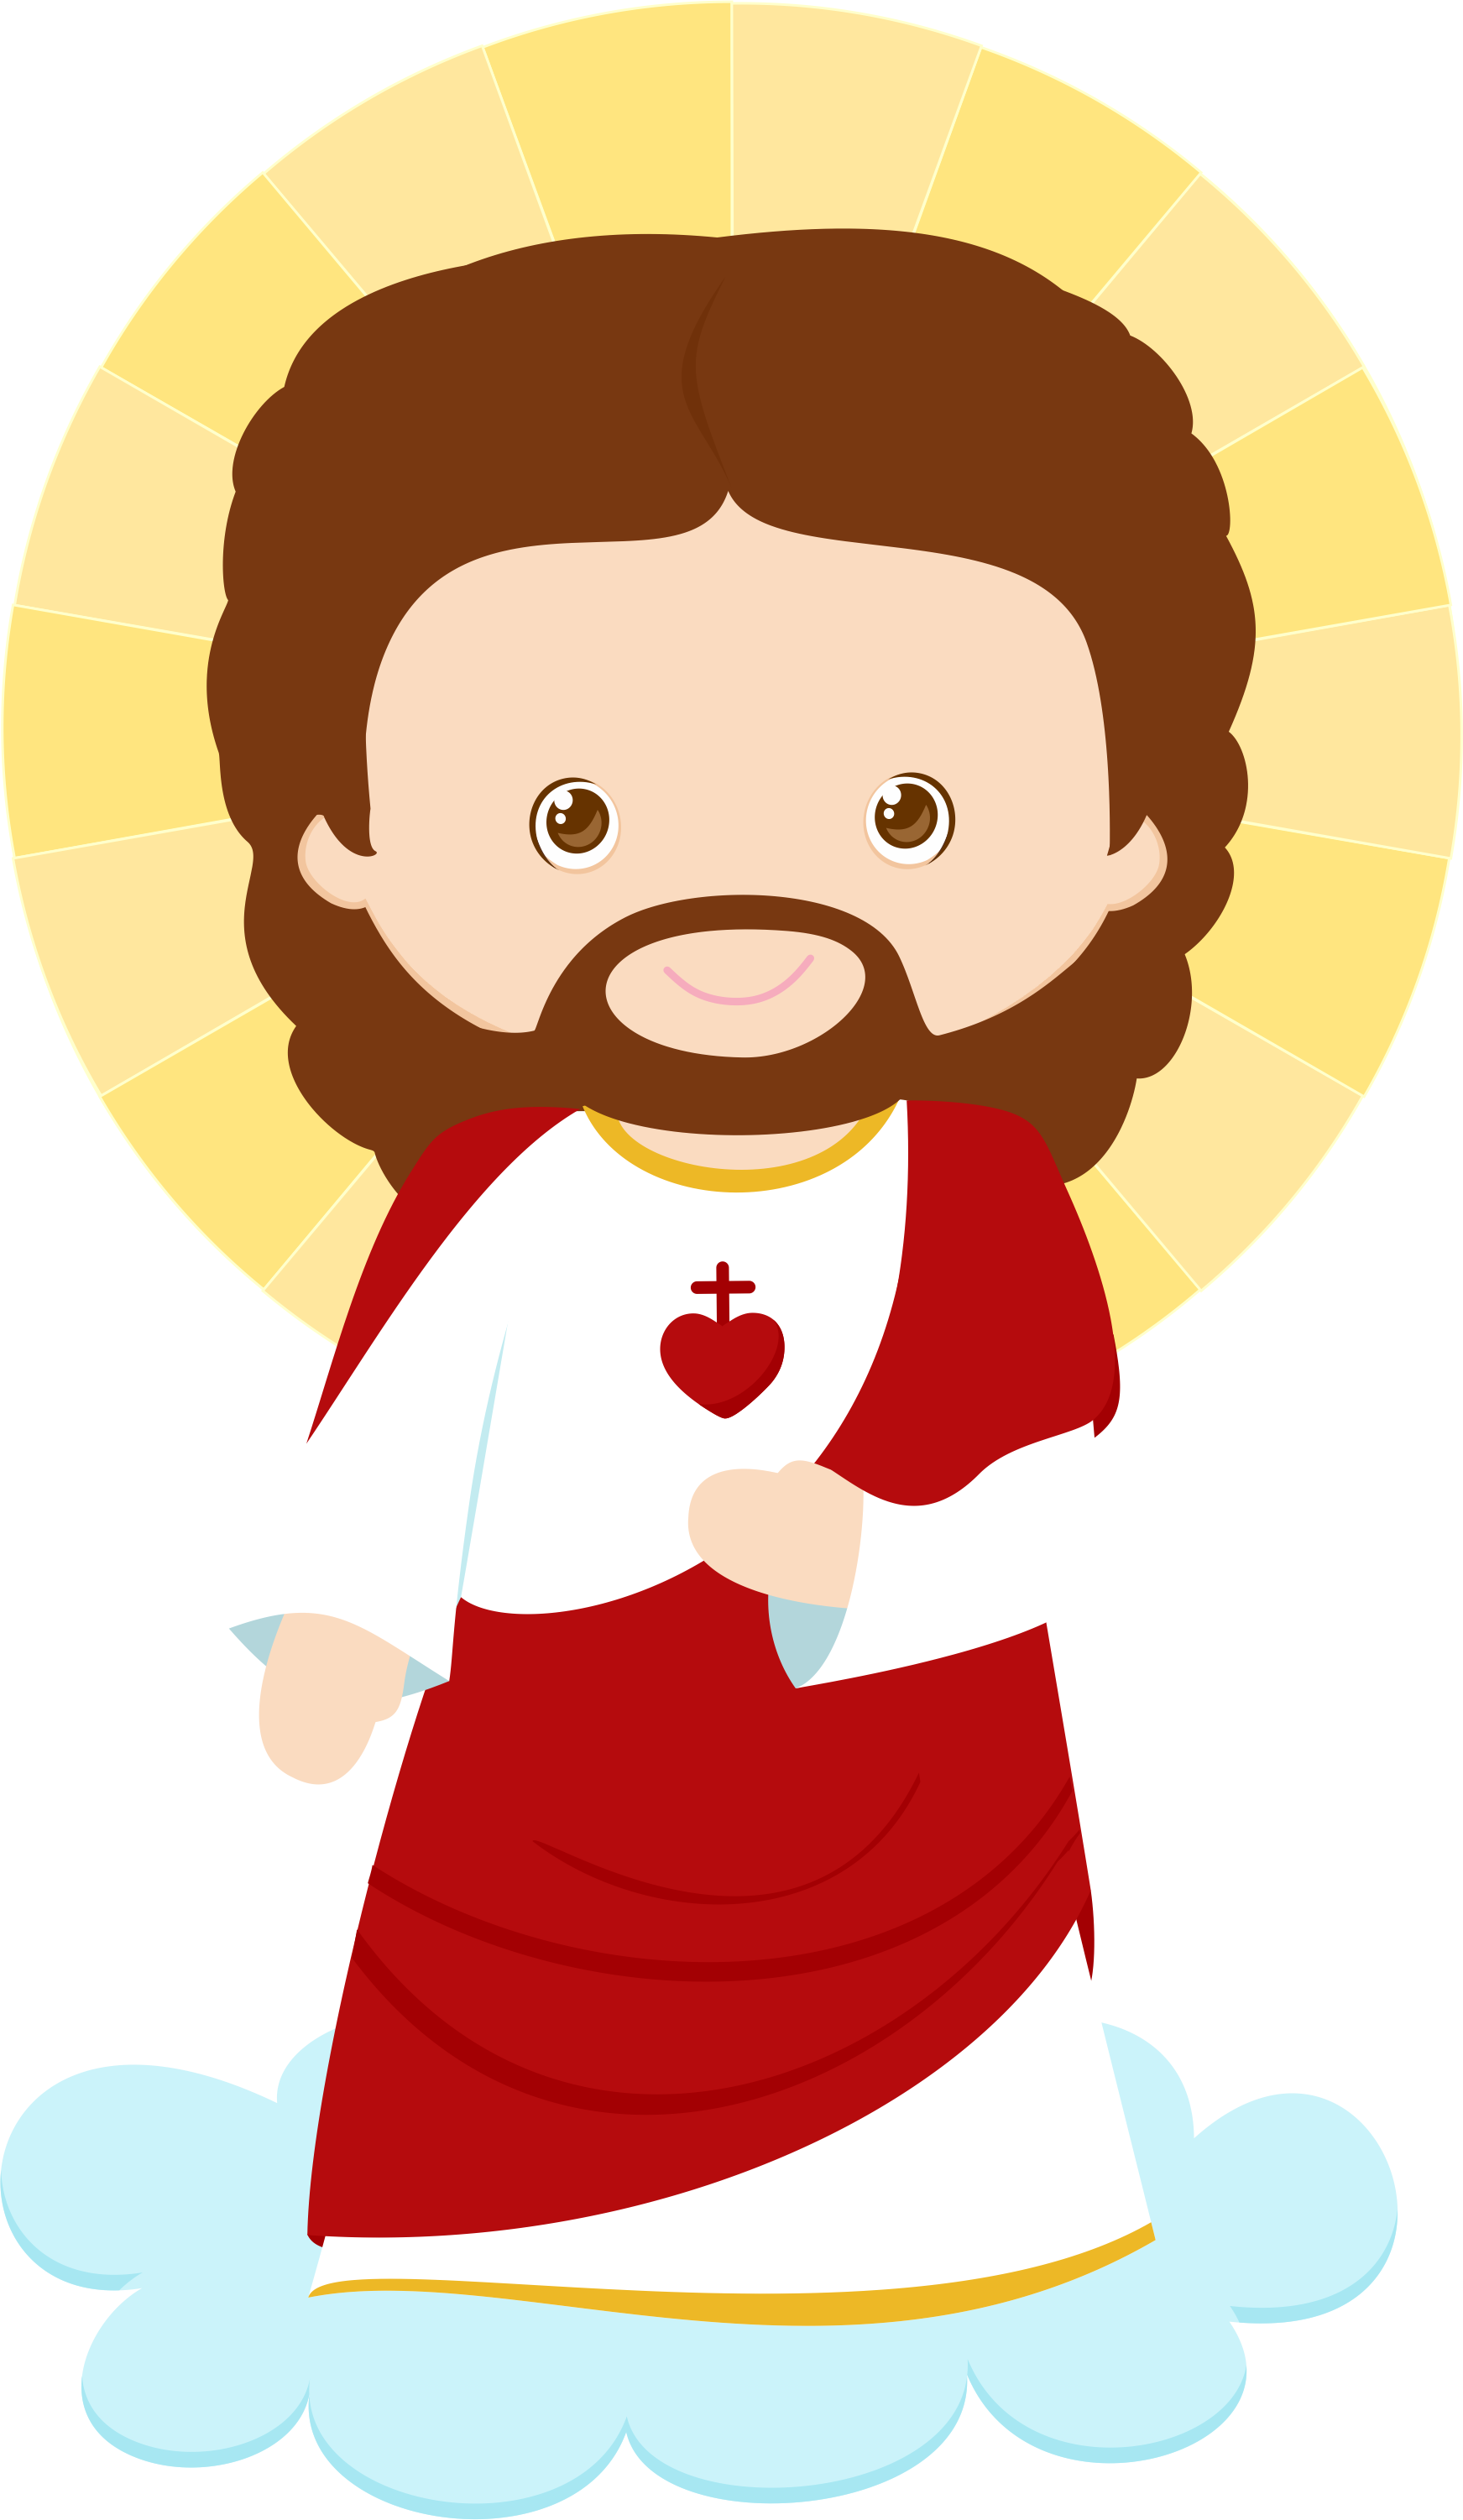 Sacred heart clipart png transparent stock Sagrado Corazón de Jesús | P R O J E C T & M O R E | Pinterest ... png transparent stock